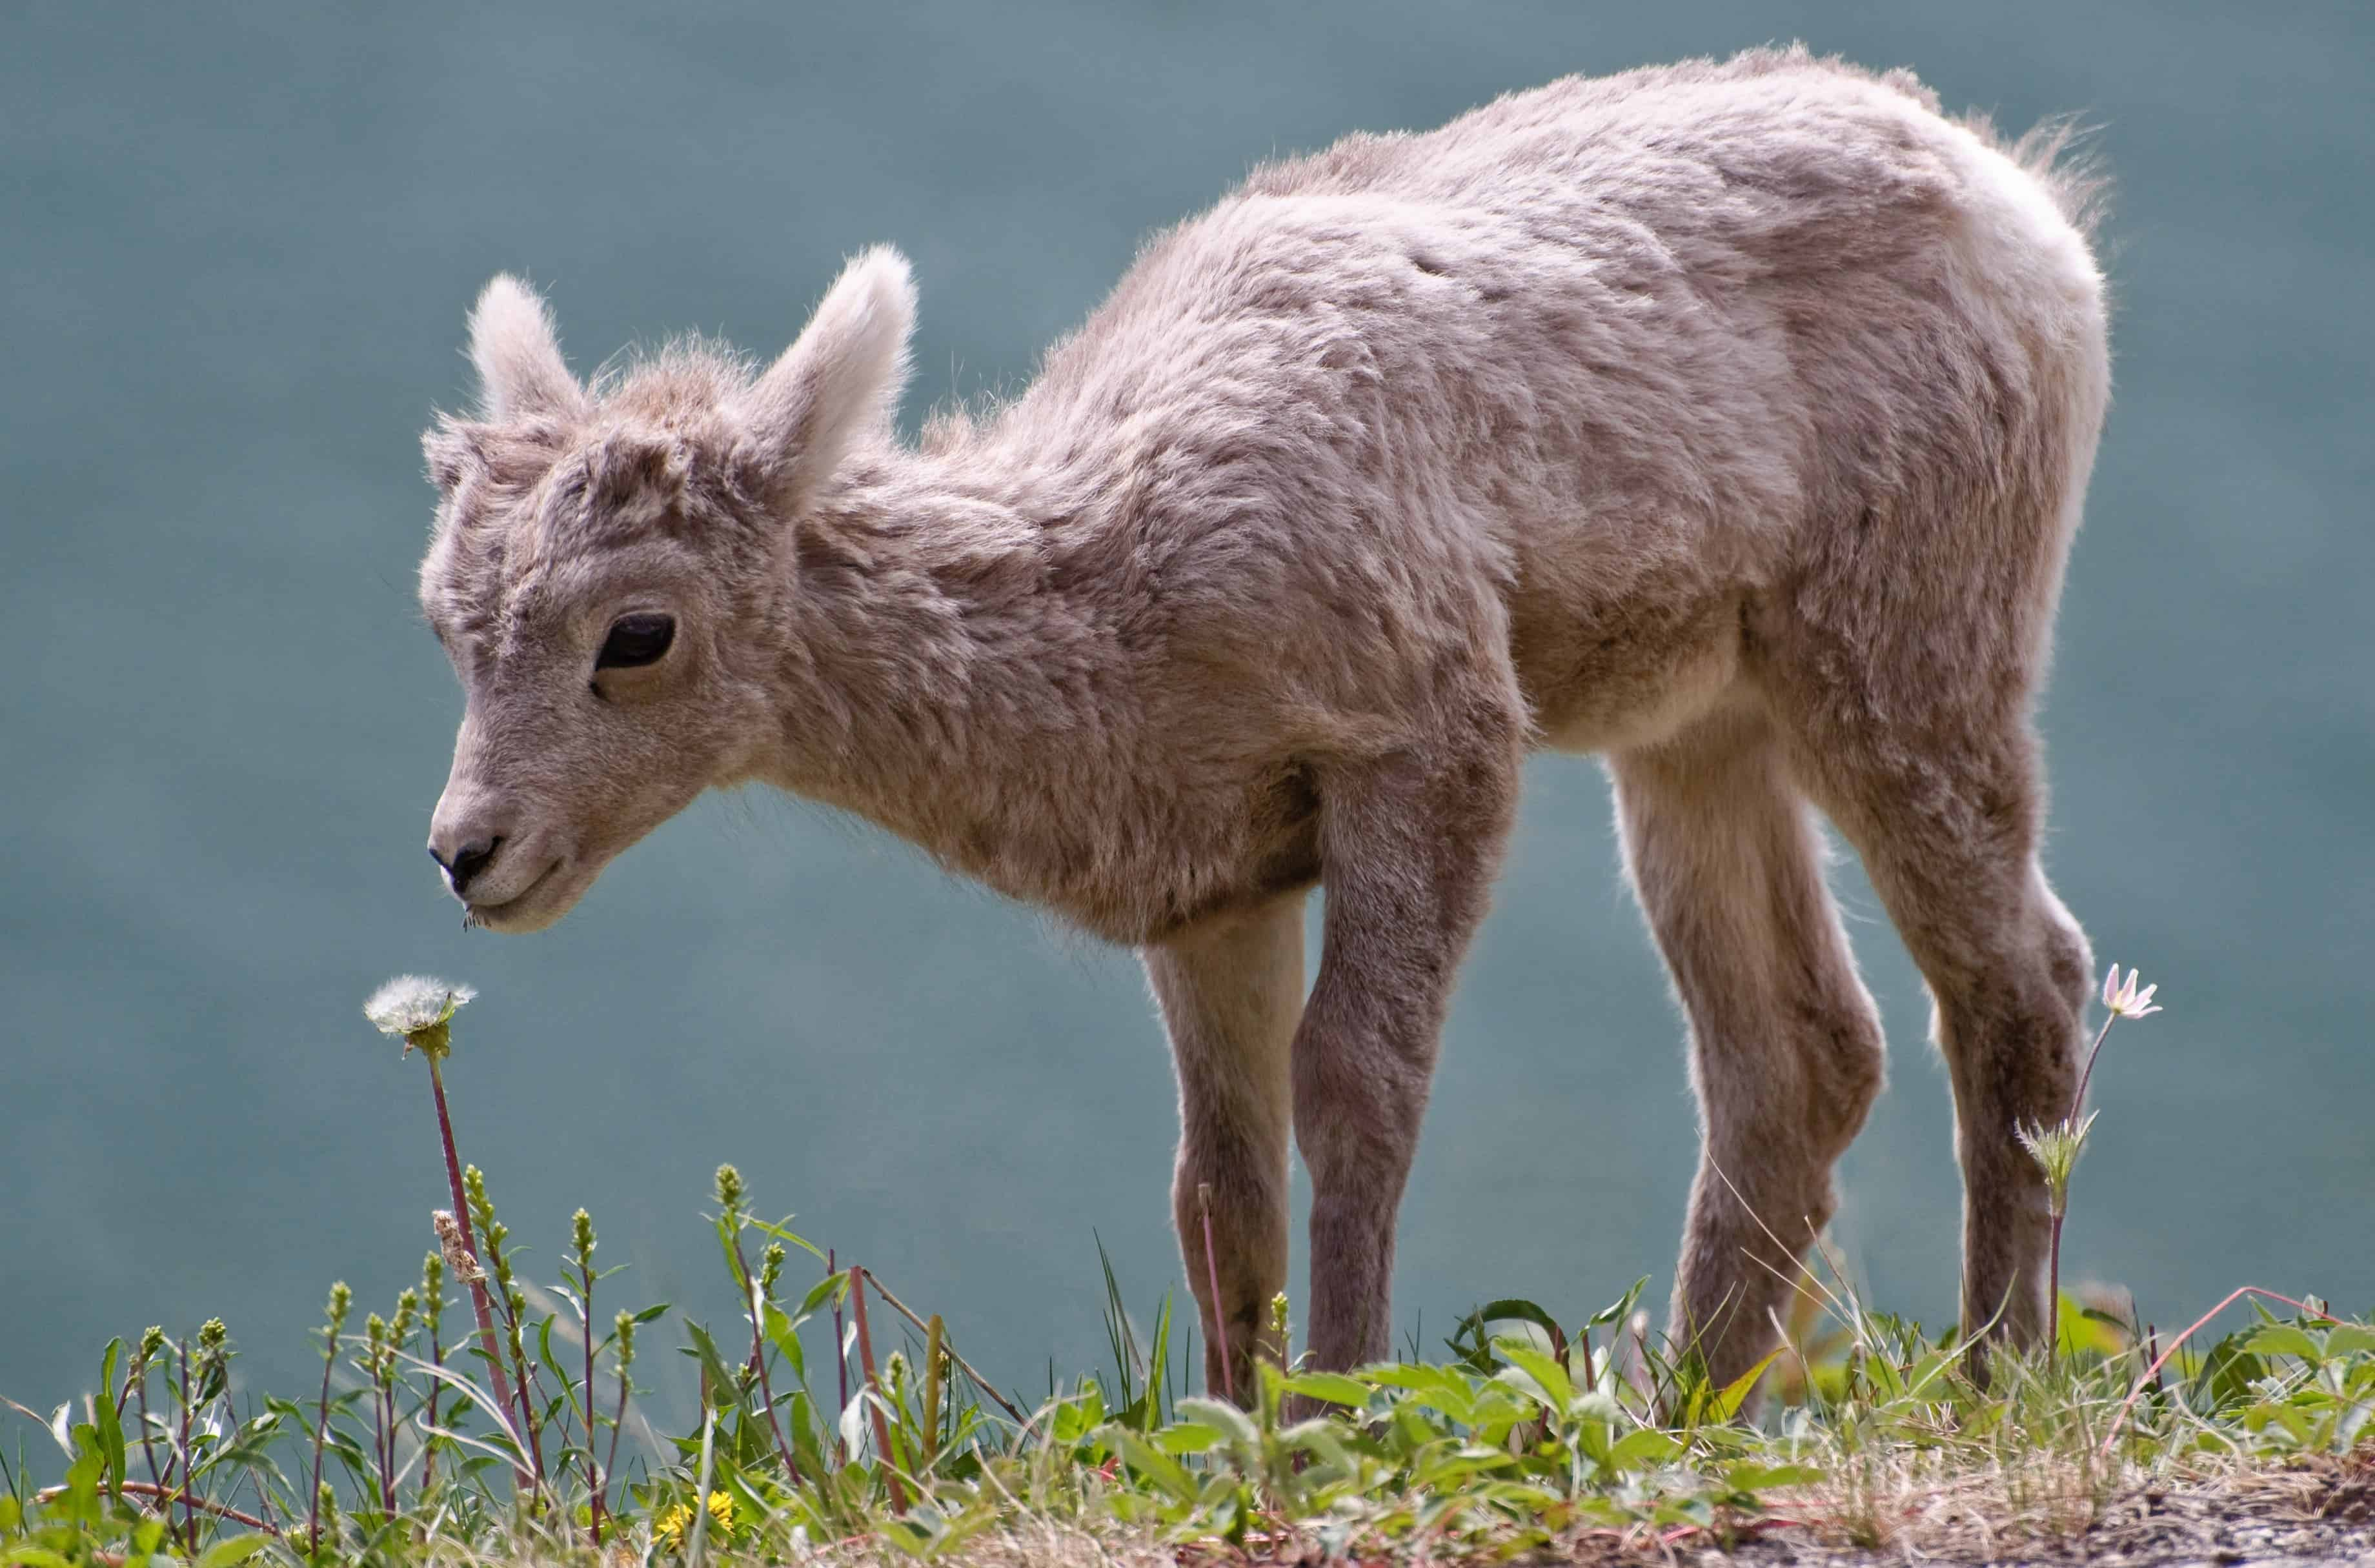 wildlife populations expected to plummet 67 by 2020 compared to